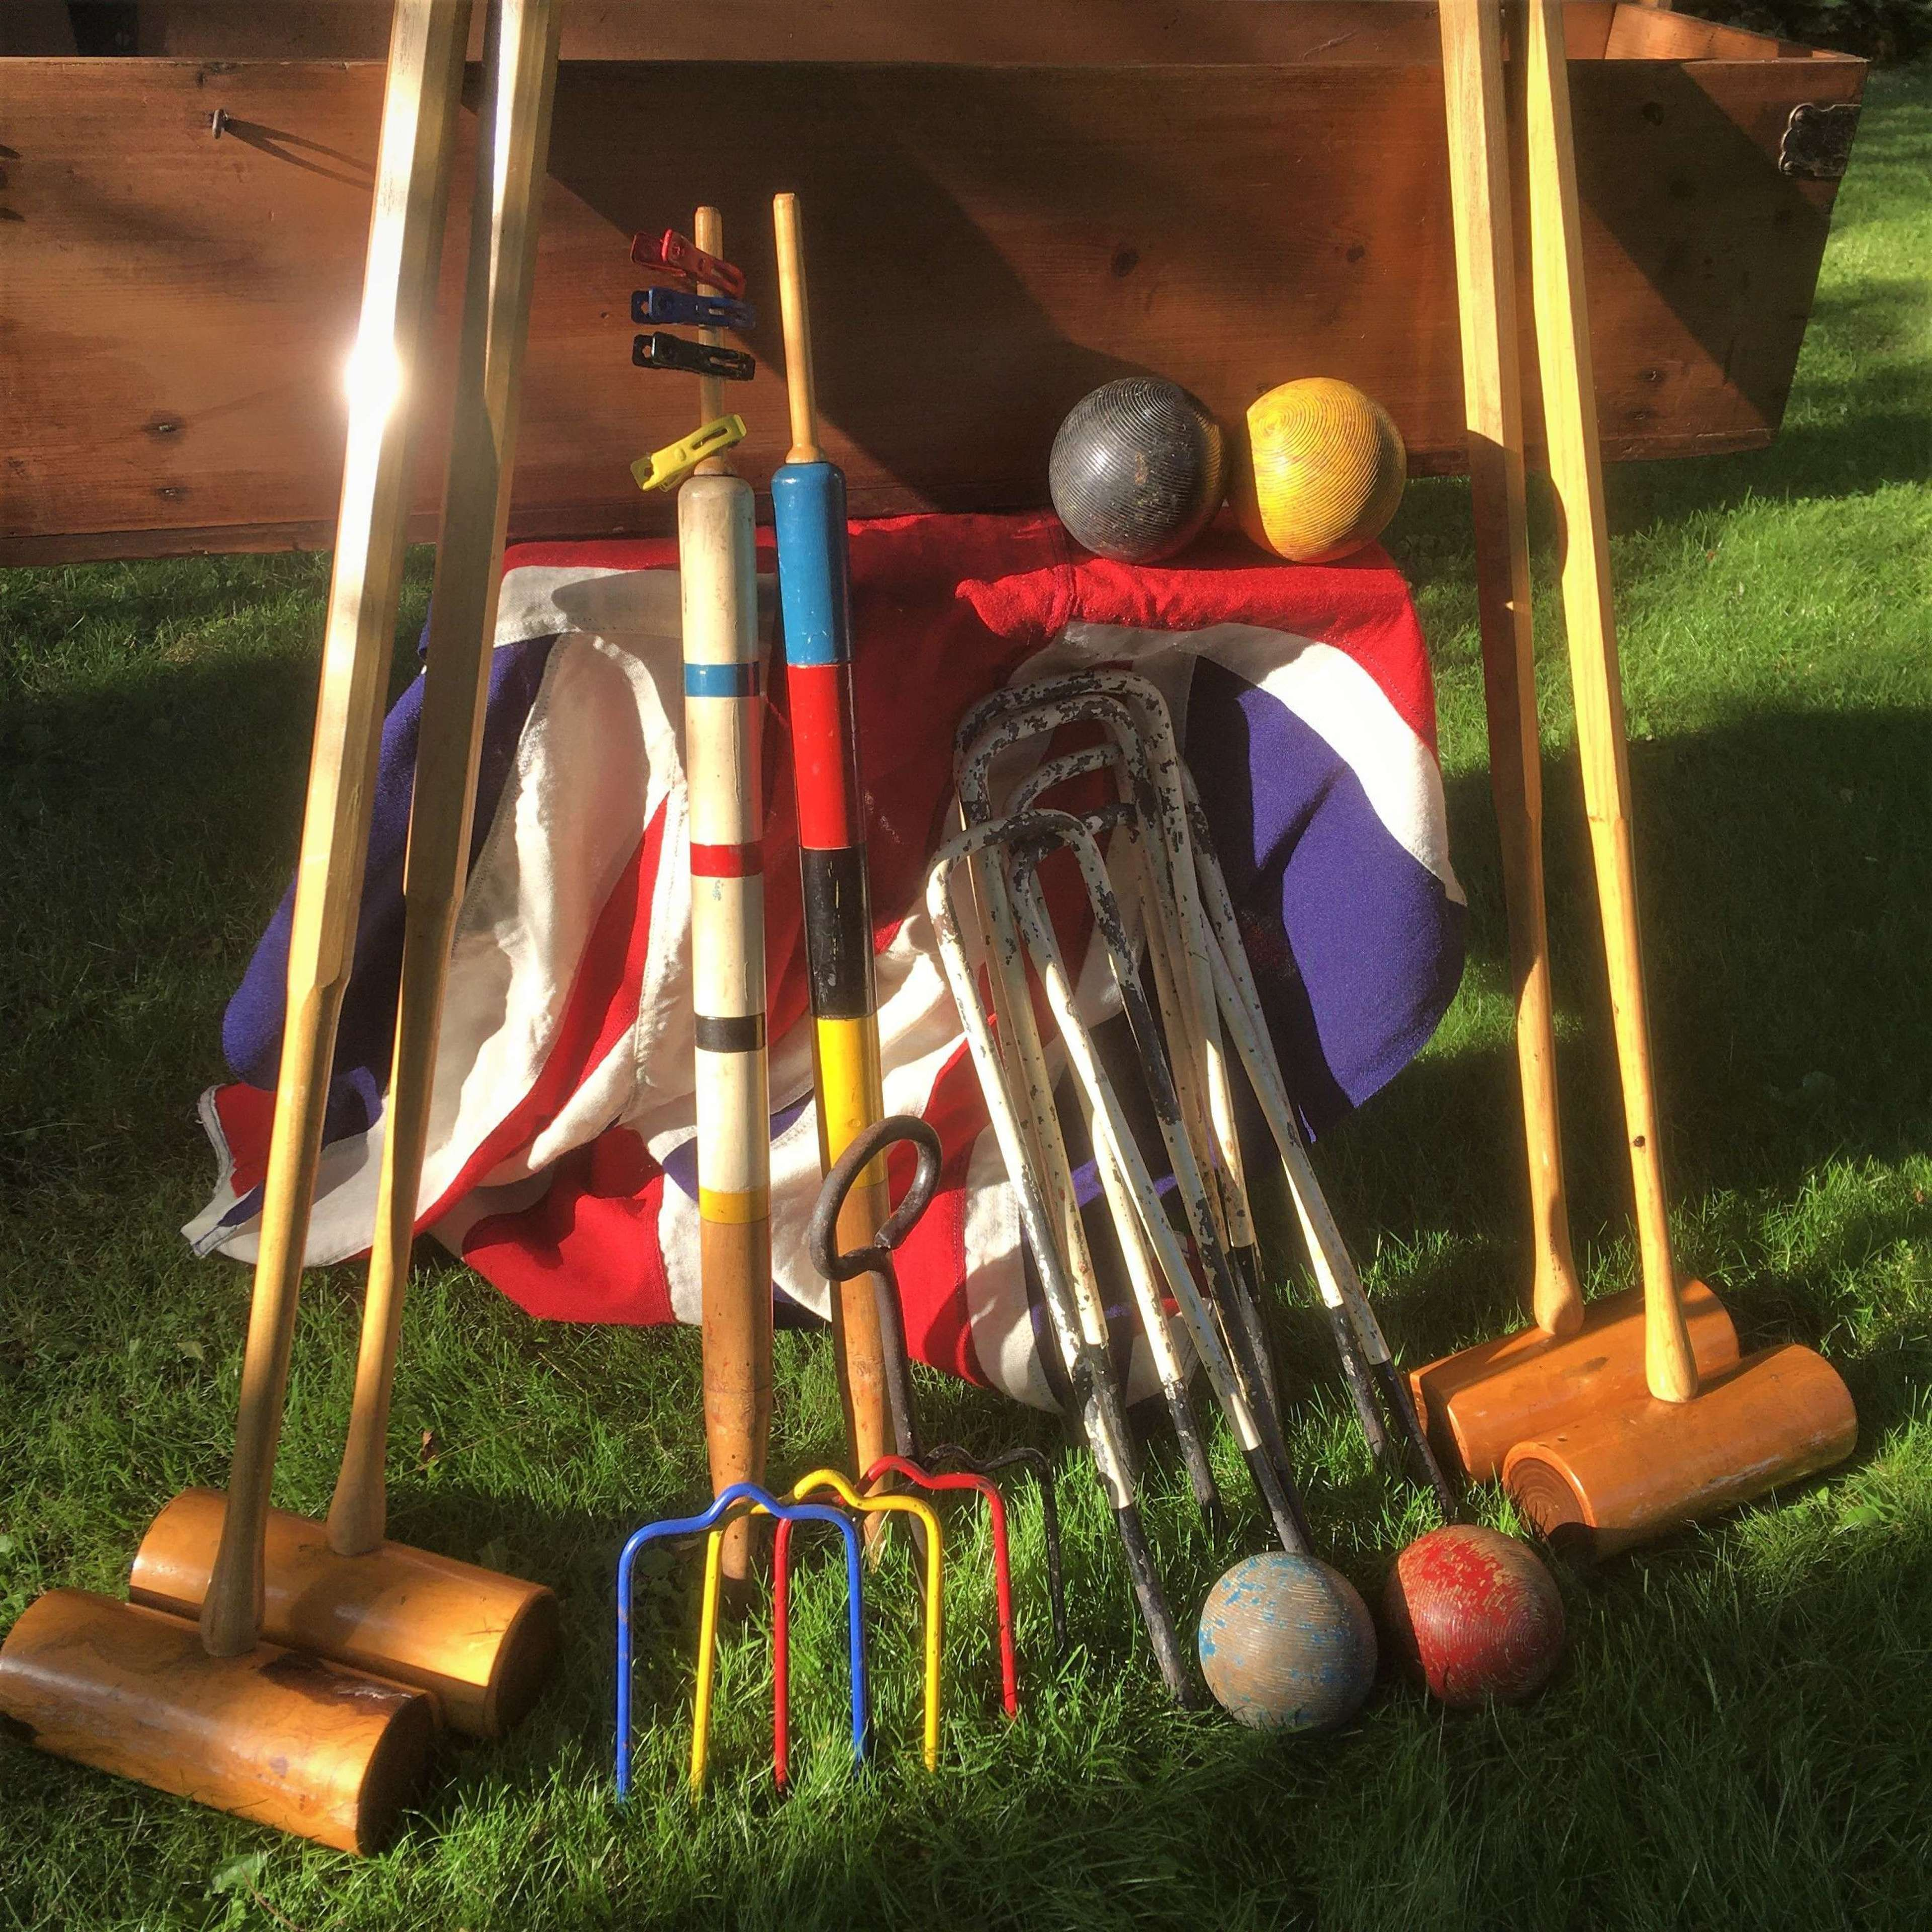 An Excellent & Extensive Croquet Set for Four (4), of Superior Quality